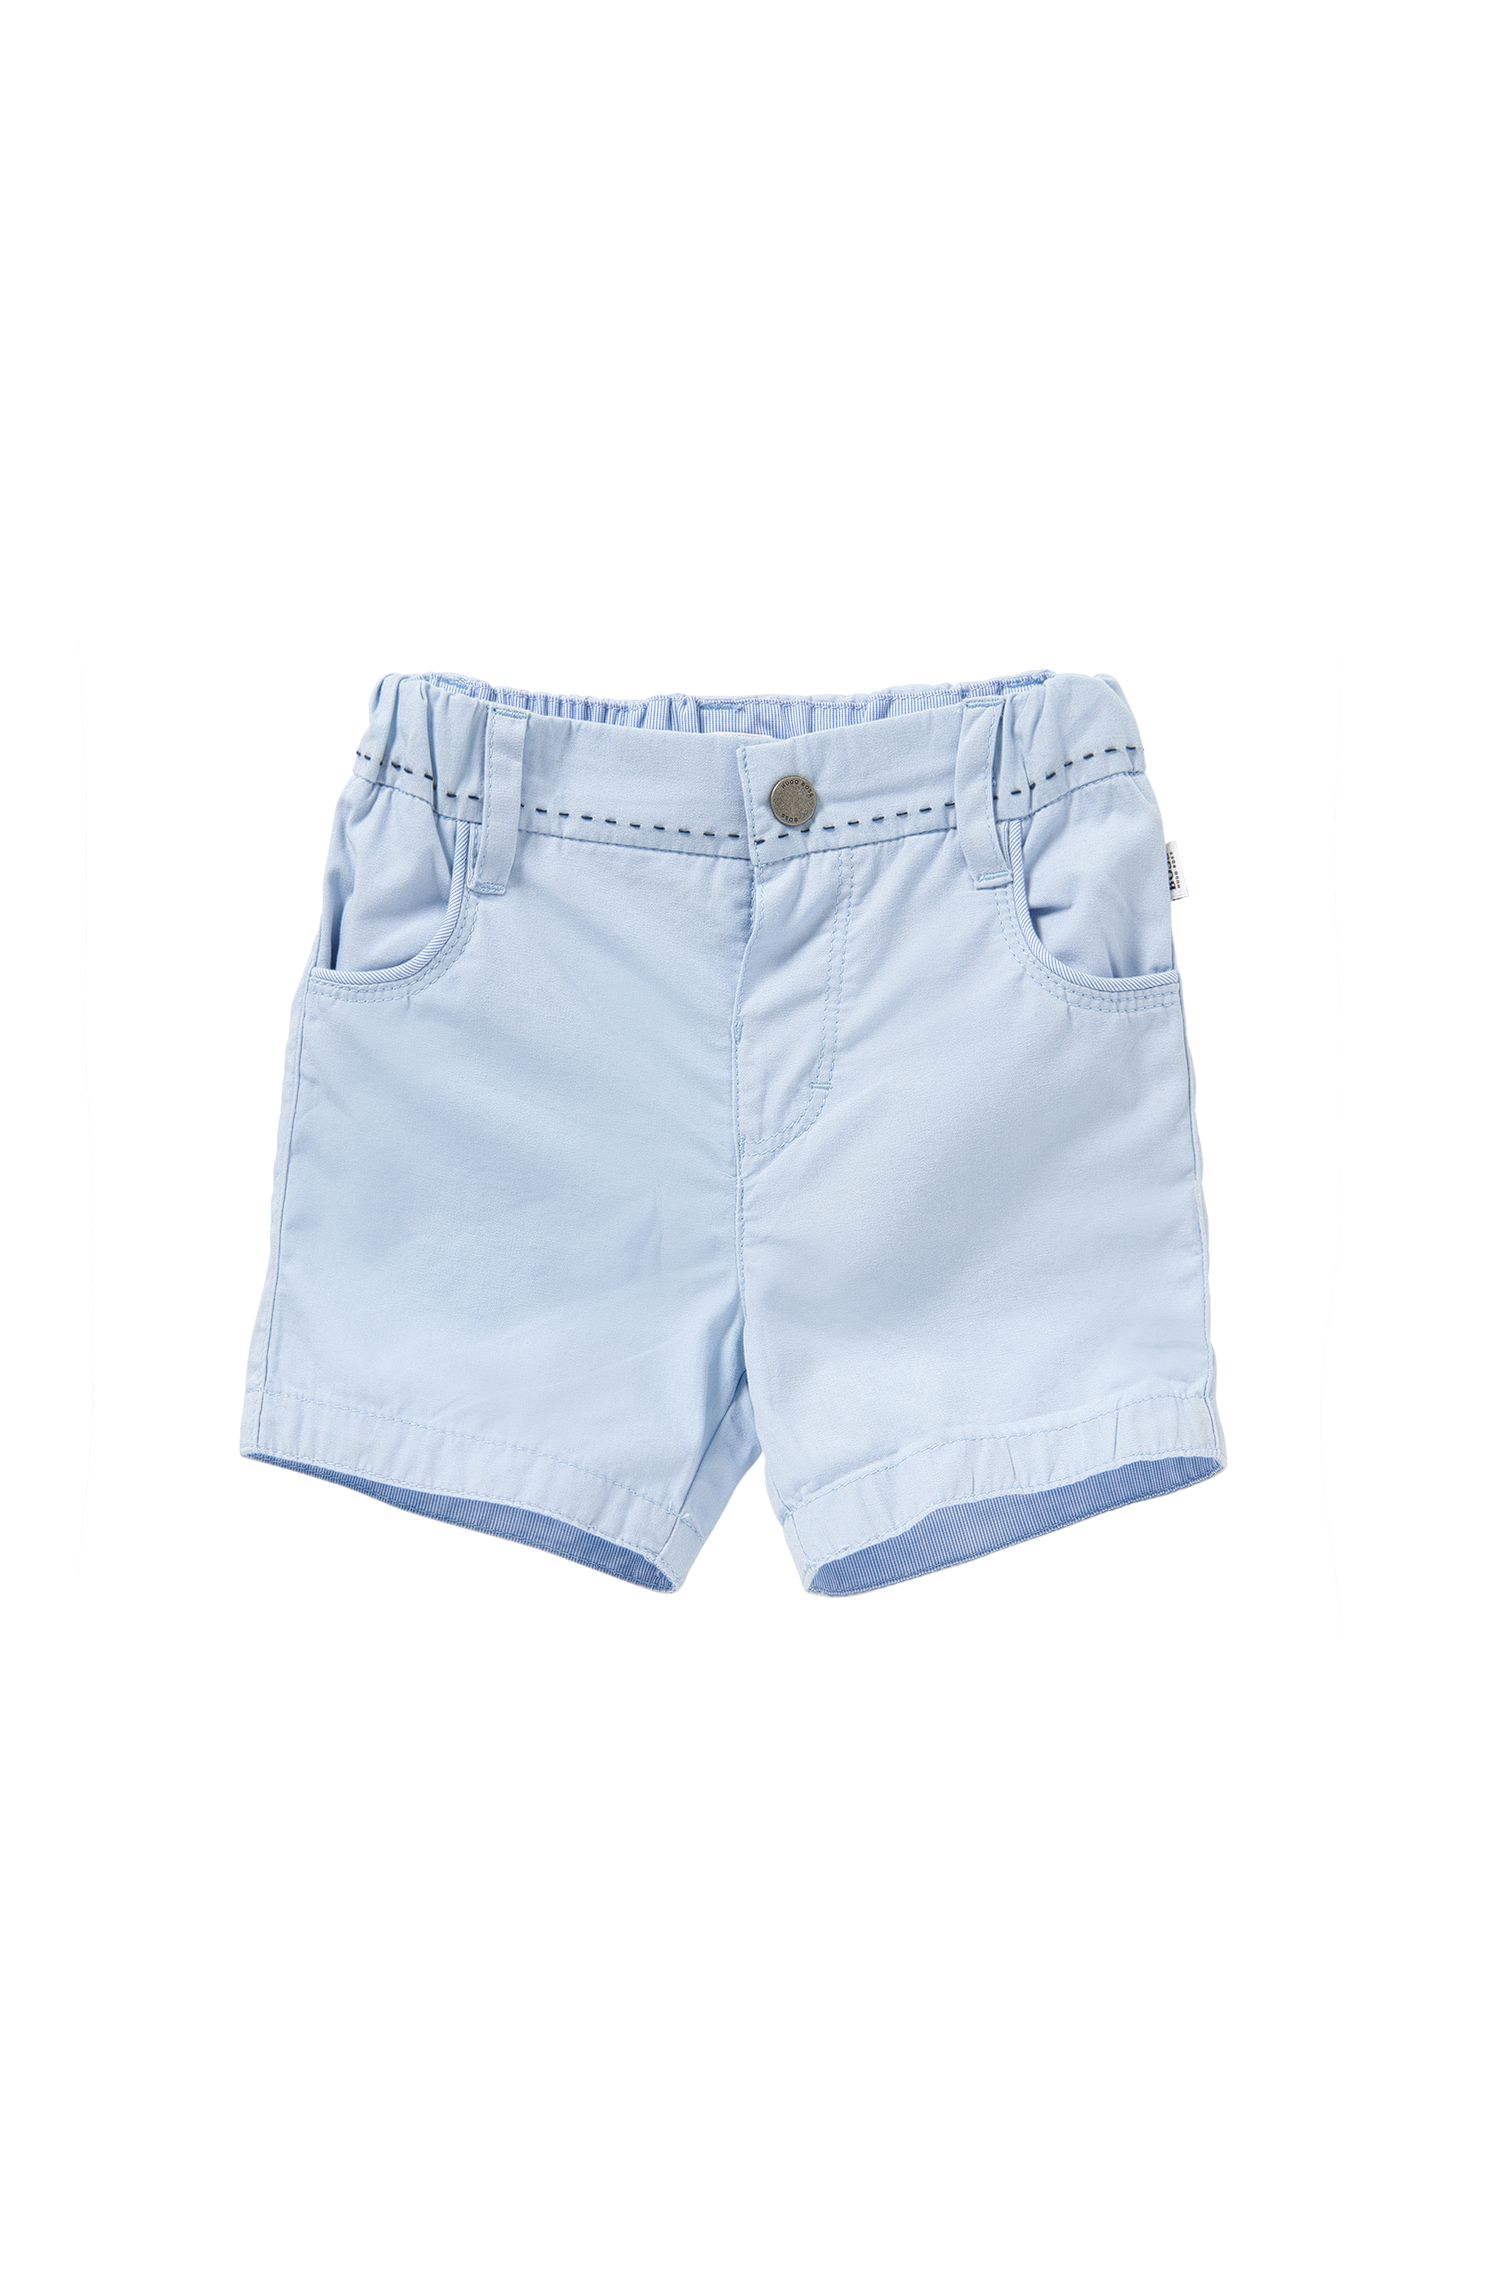 Newborns' shorts in cotton with striped details: 'J94154'